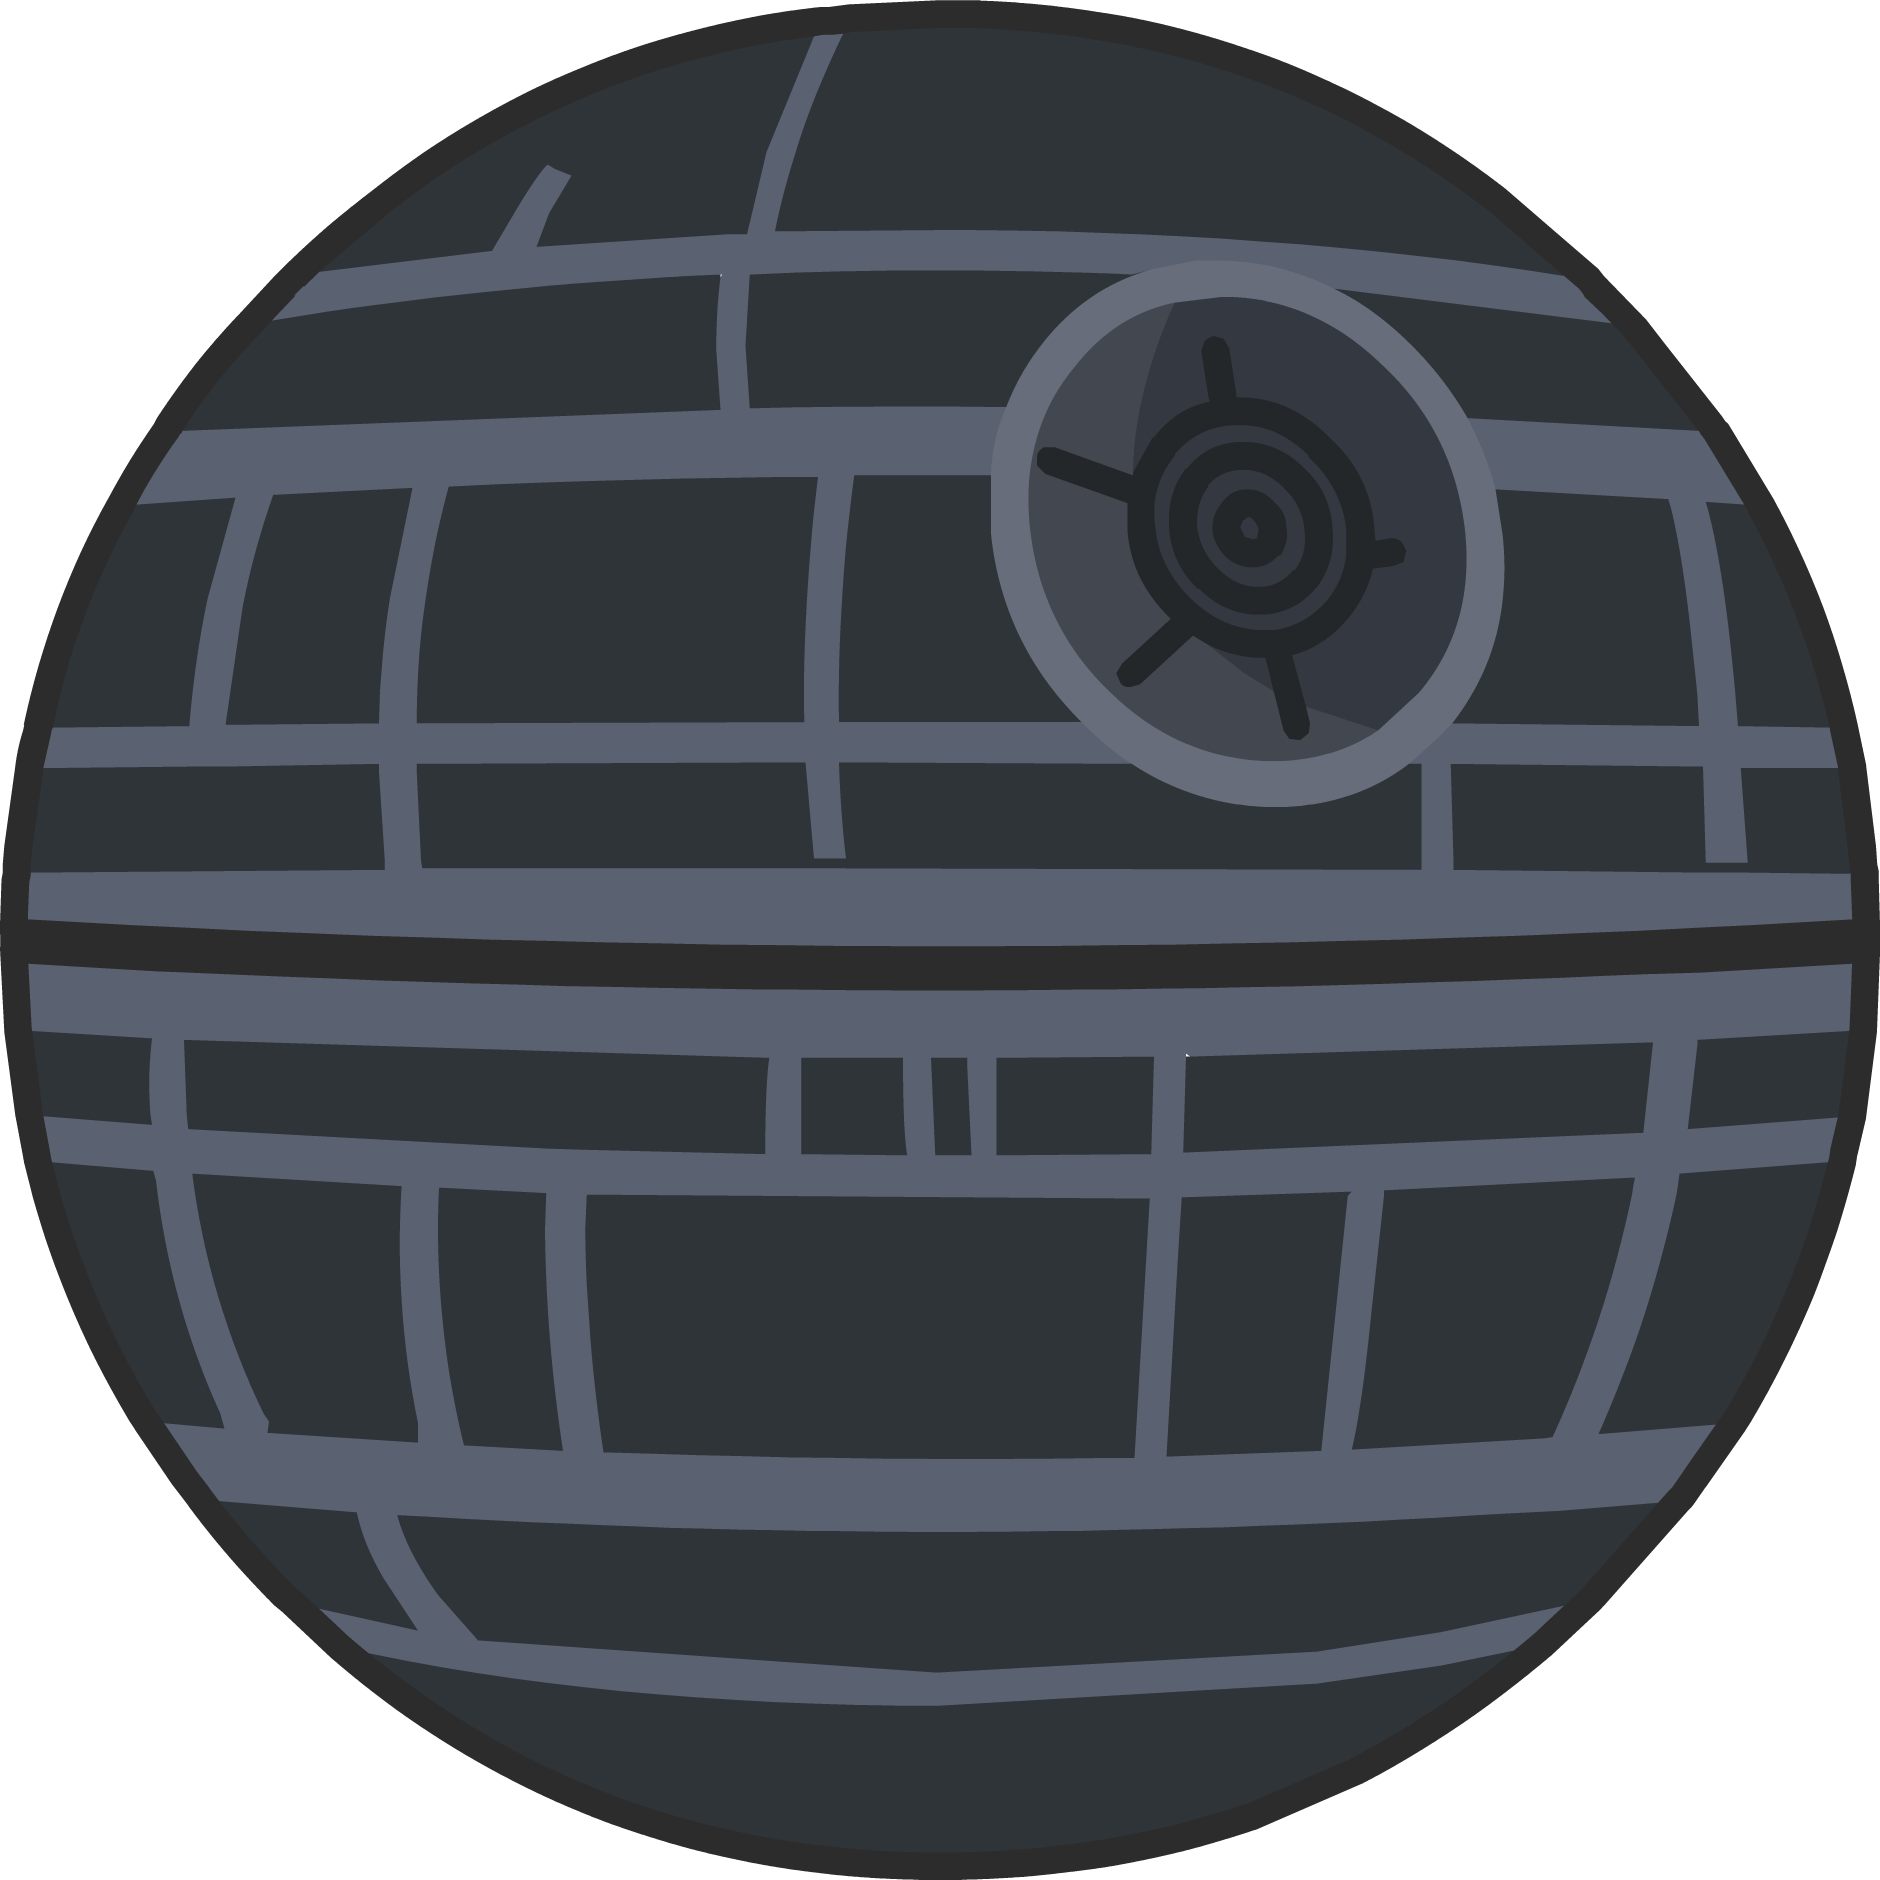 Image Death Star iconpng Club Penguin Wiki FANDOM powered